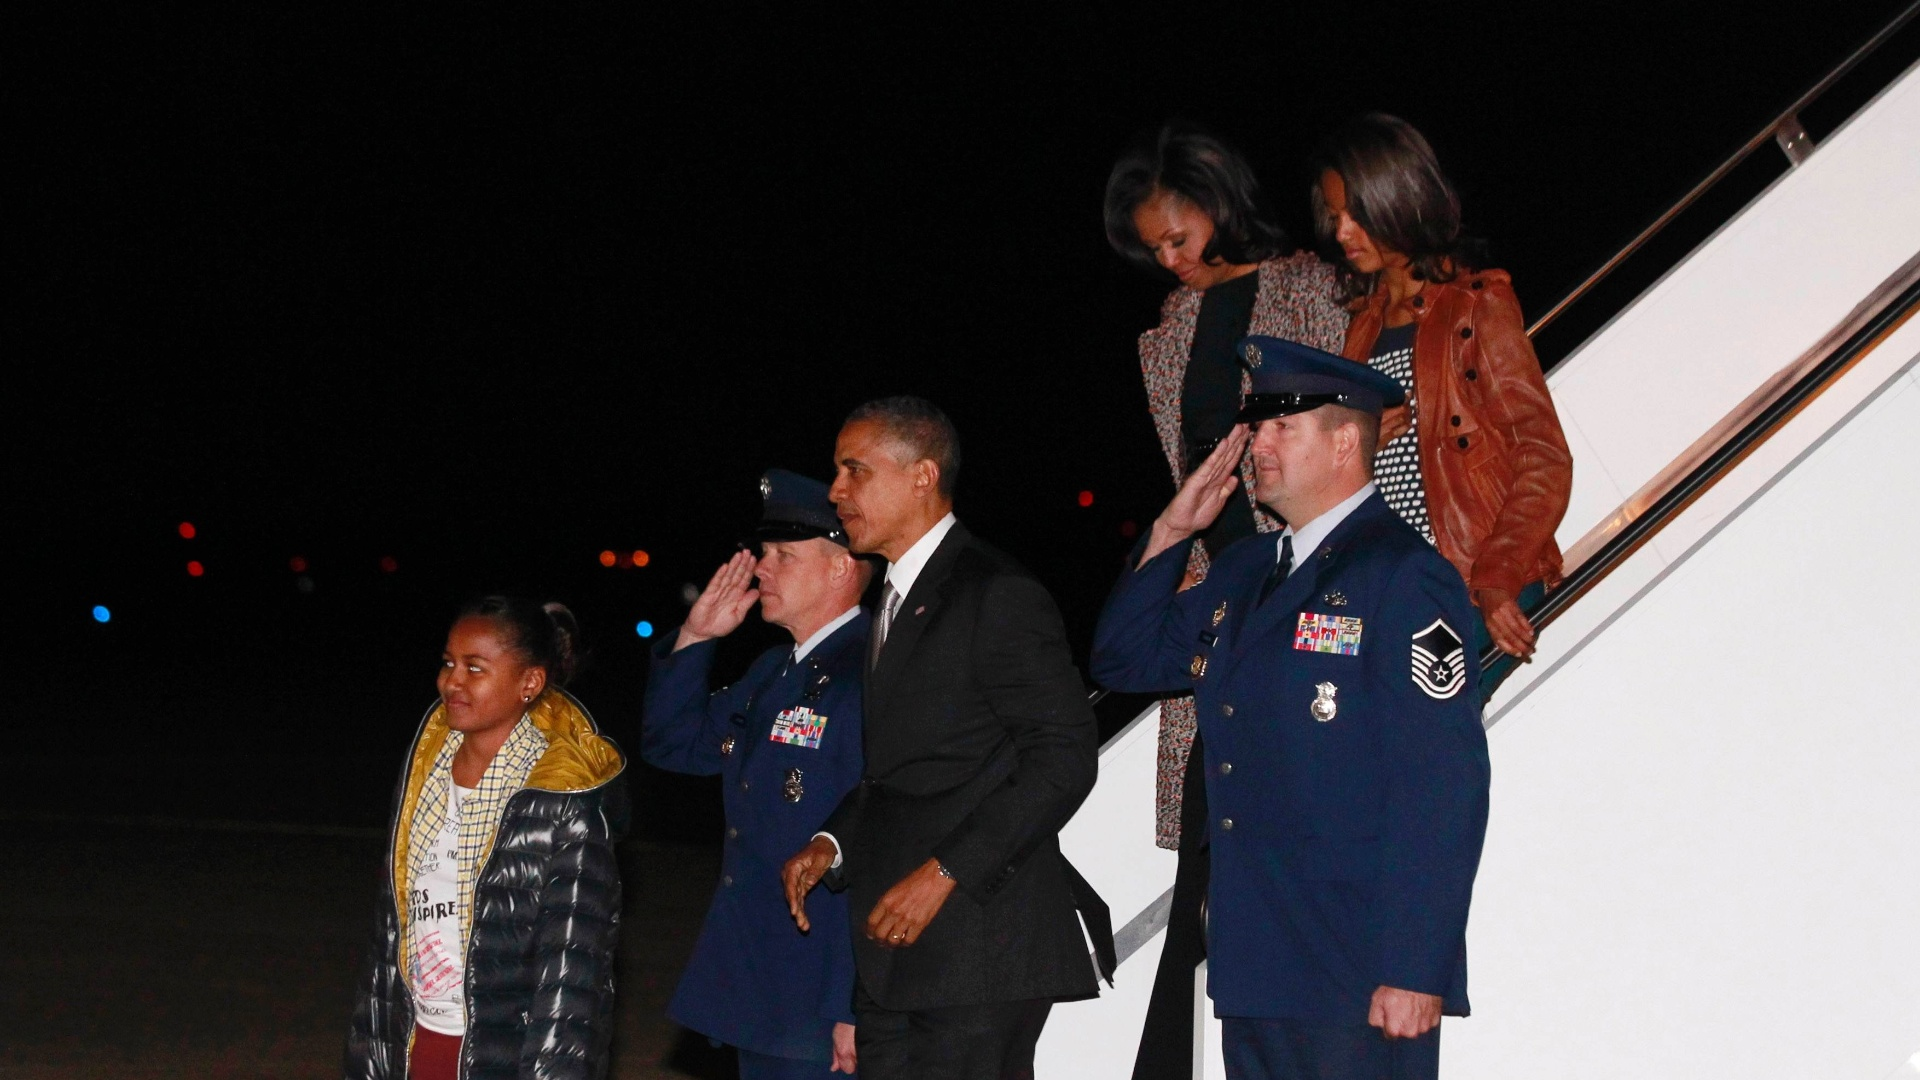 7.nov.2012 -O presidente reeleito dos Estados Unidos, Barack Obama, a primeira-dama, Michelle Obama, e as filhas do casal, Malia e Sasha chegam em Washington (EUA)